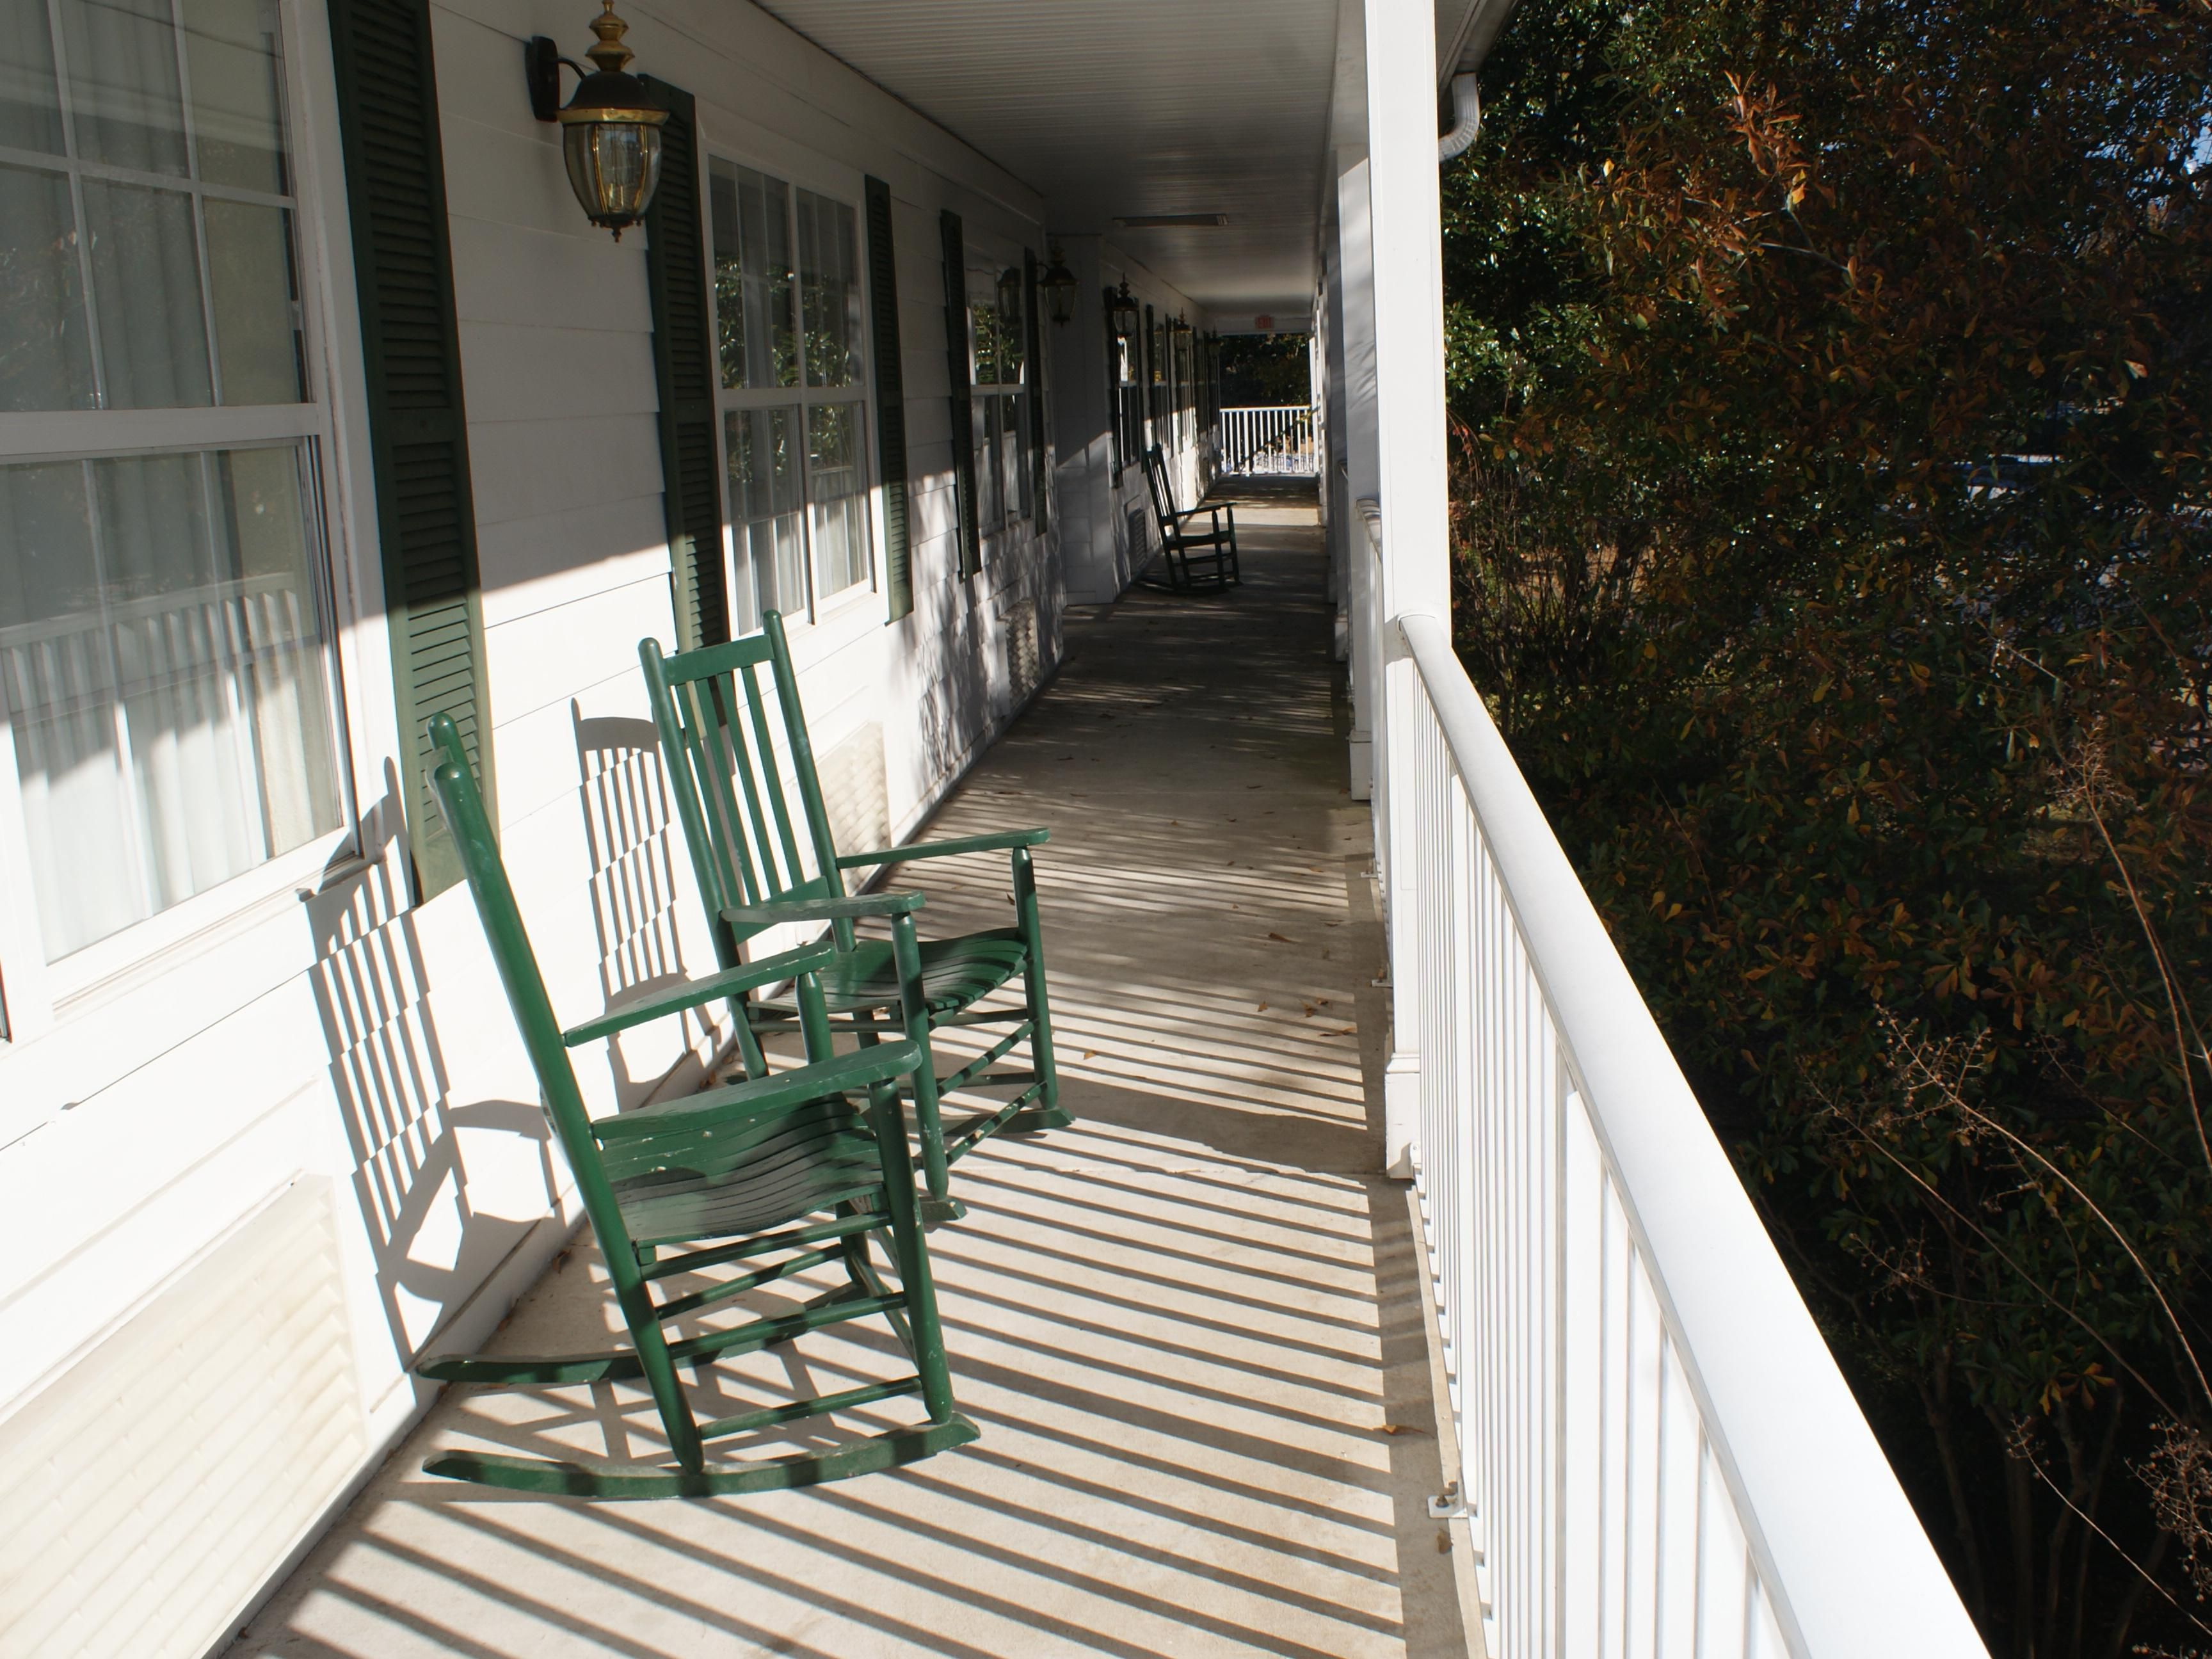 Wrap around porches with rocking chairs